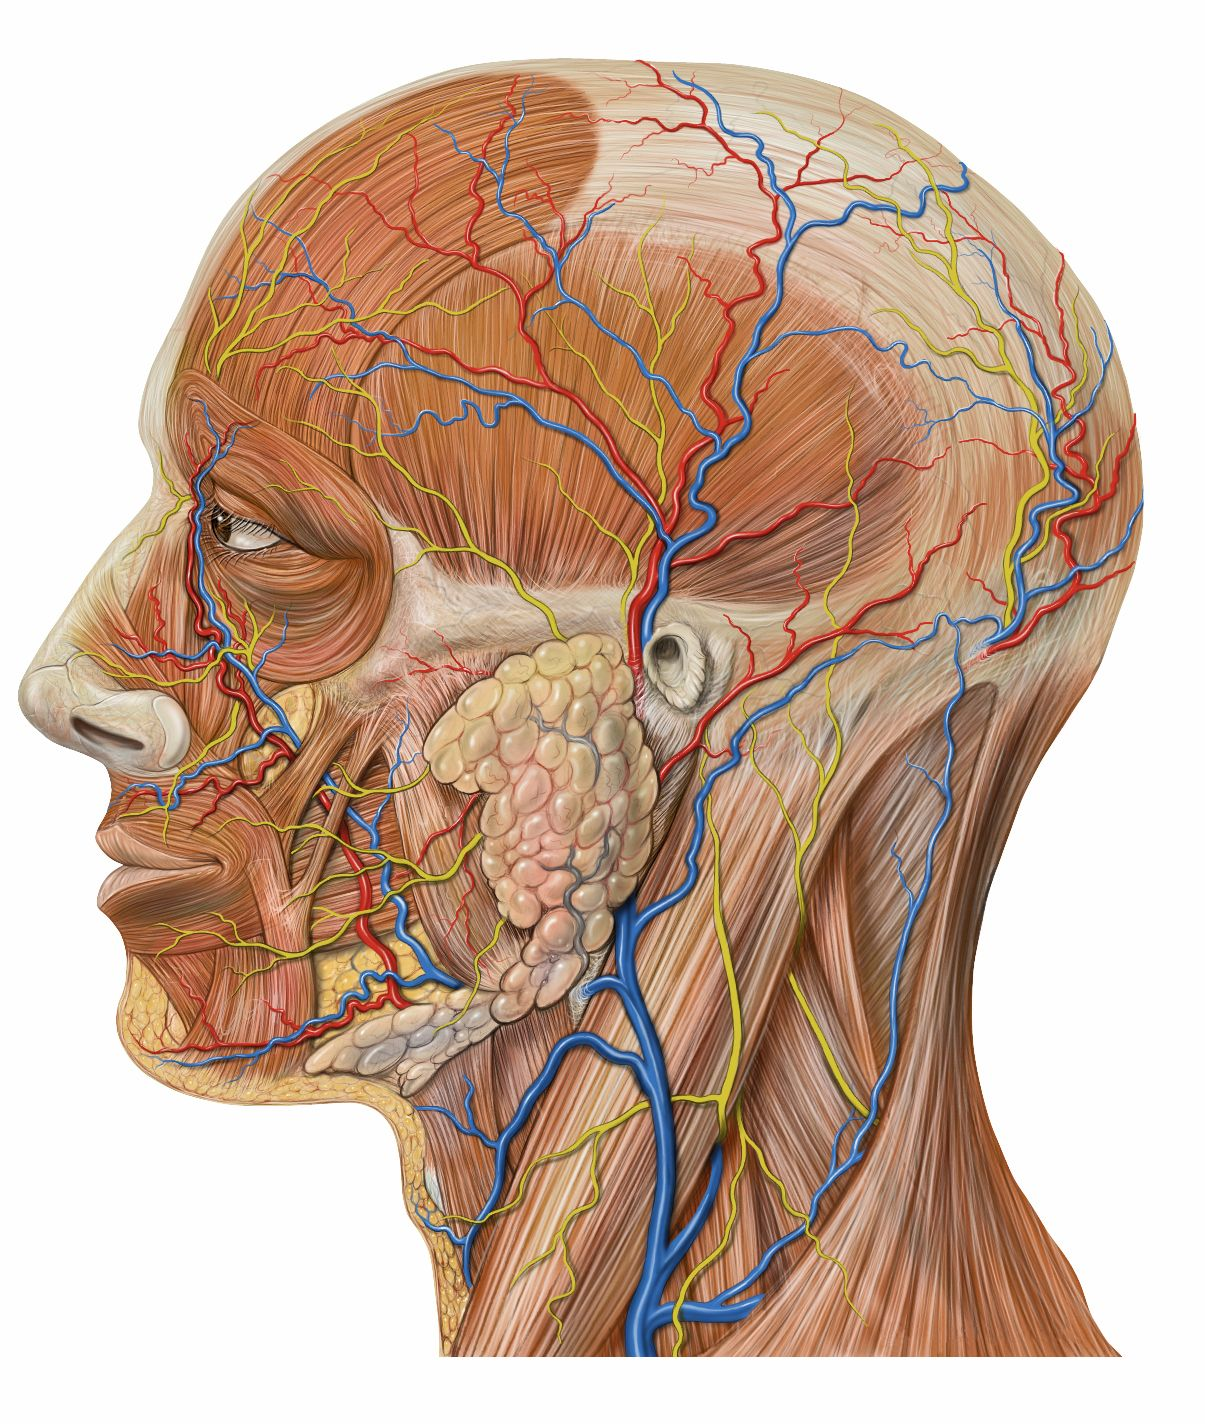 lateral view of head, circulatory, muscle, glands | Cancer ...